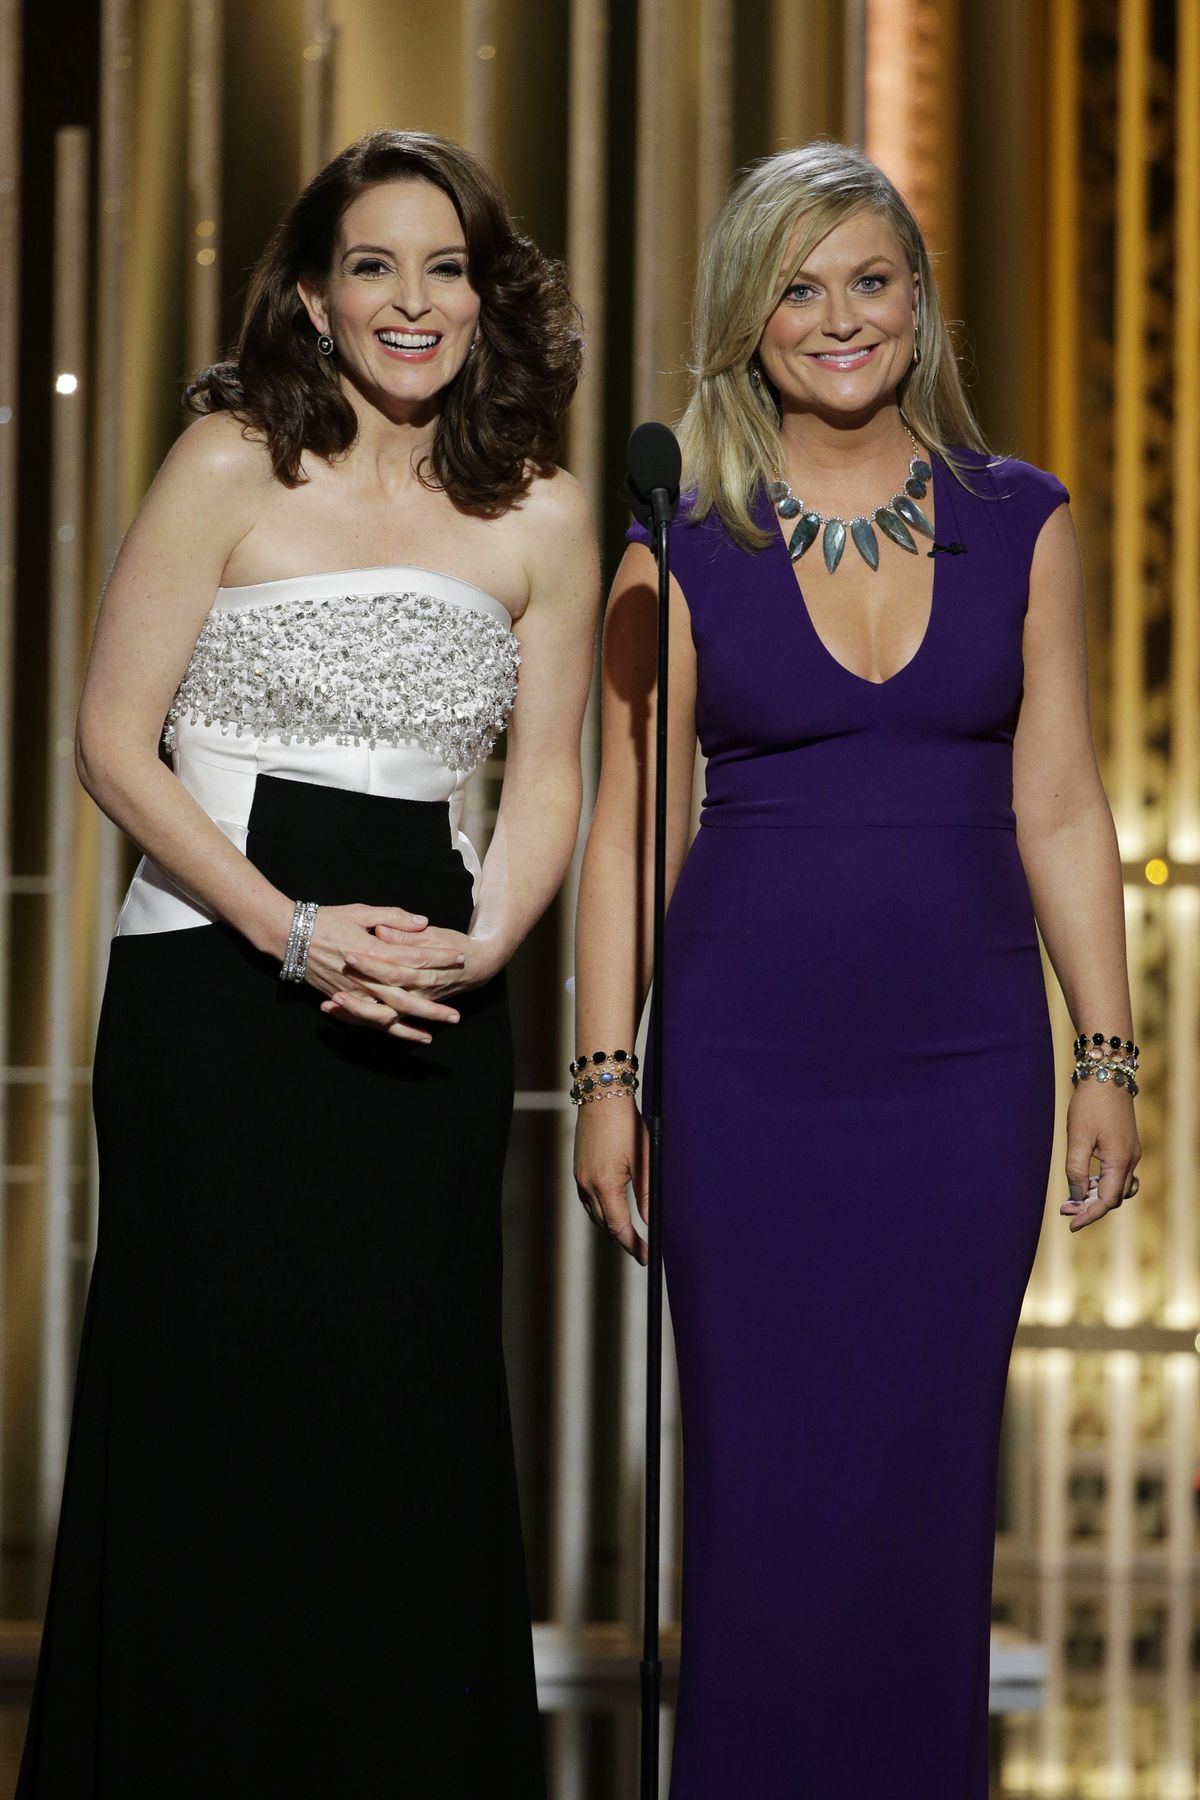 Tina Fey and Amy Poehler Hosting 2015 Golden Globes